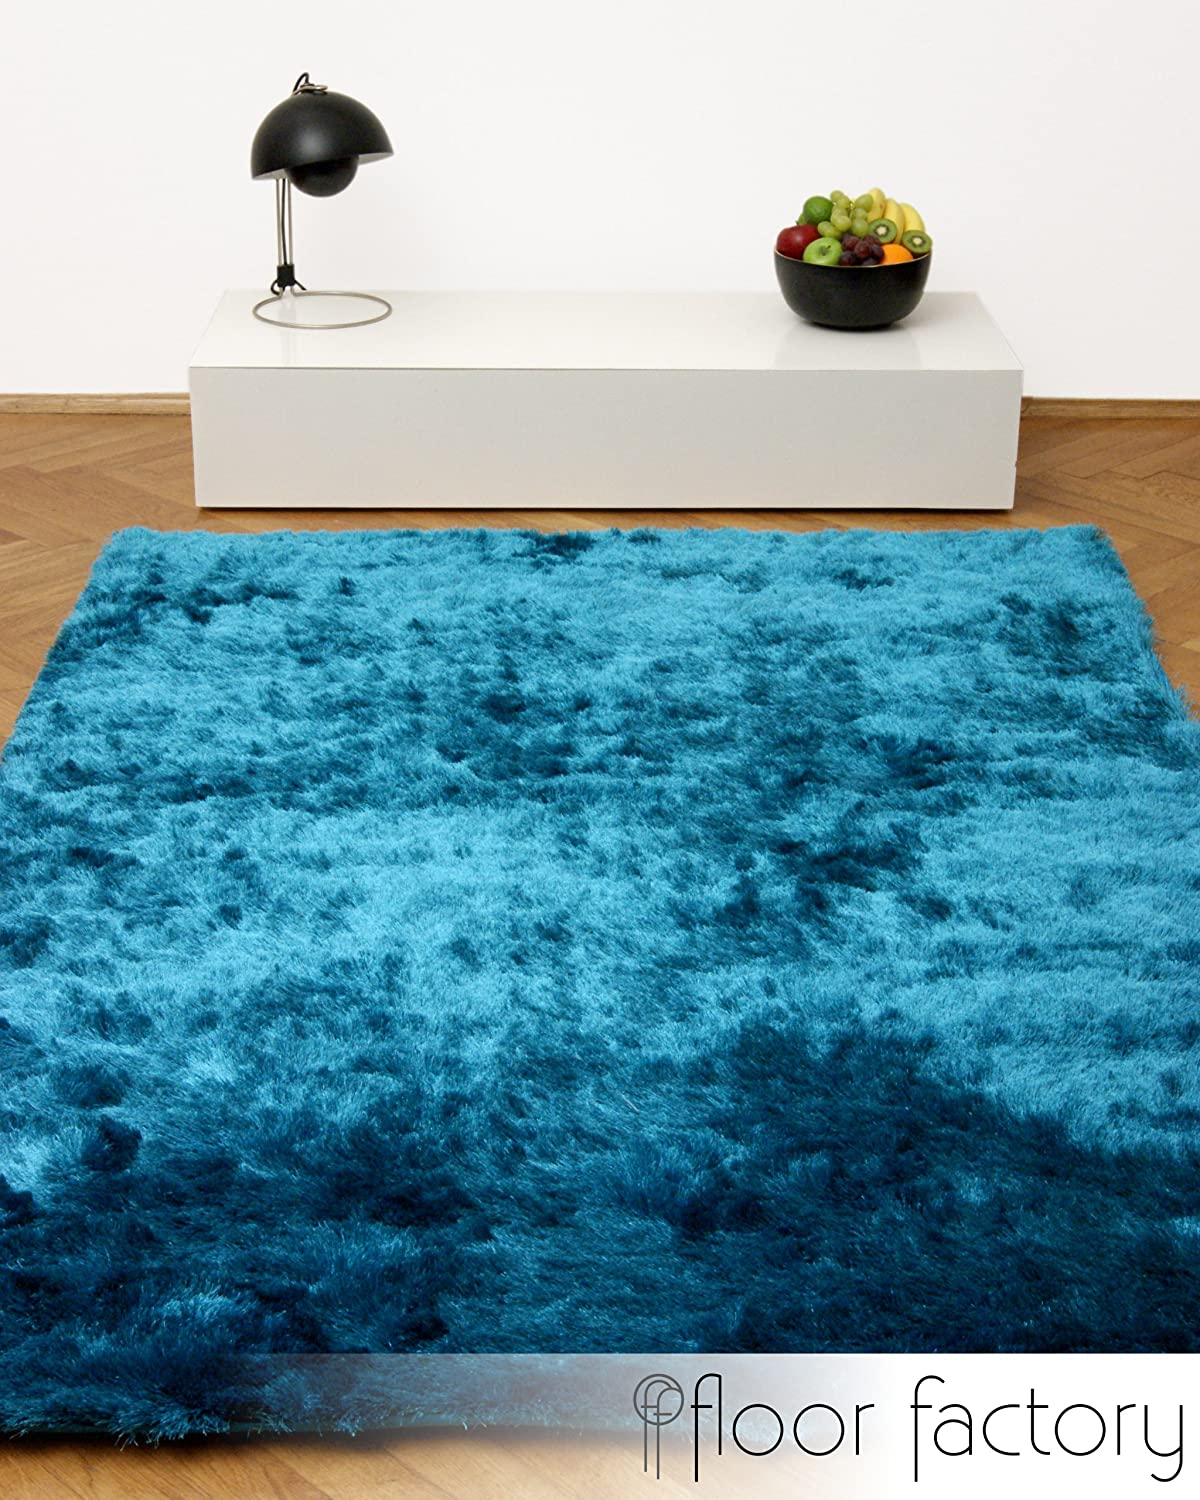 Awesome tapis marron et bleu images awesome interior for Salon bleu turquoise